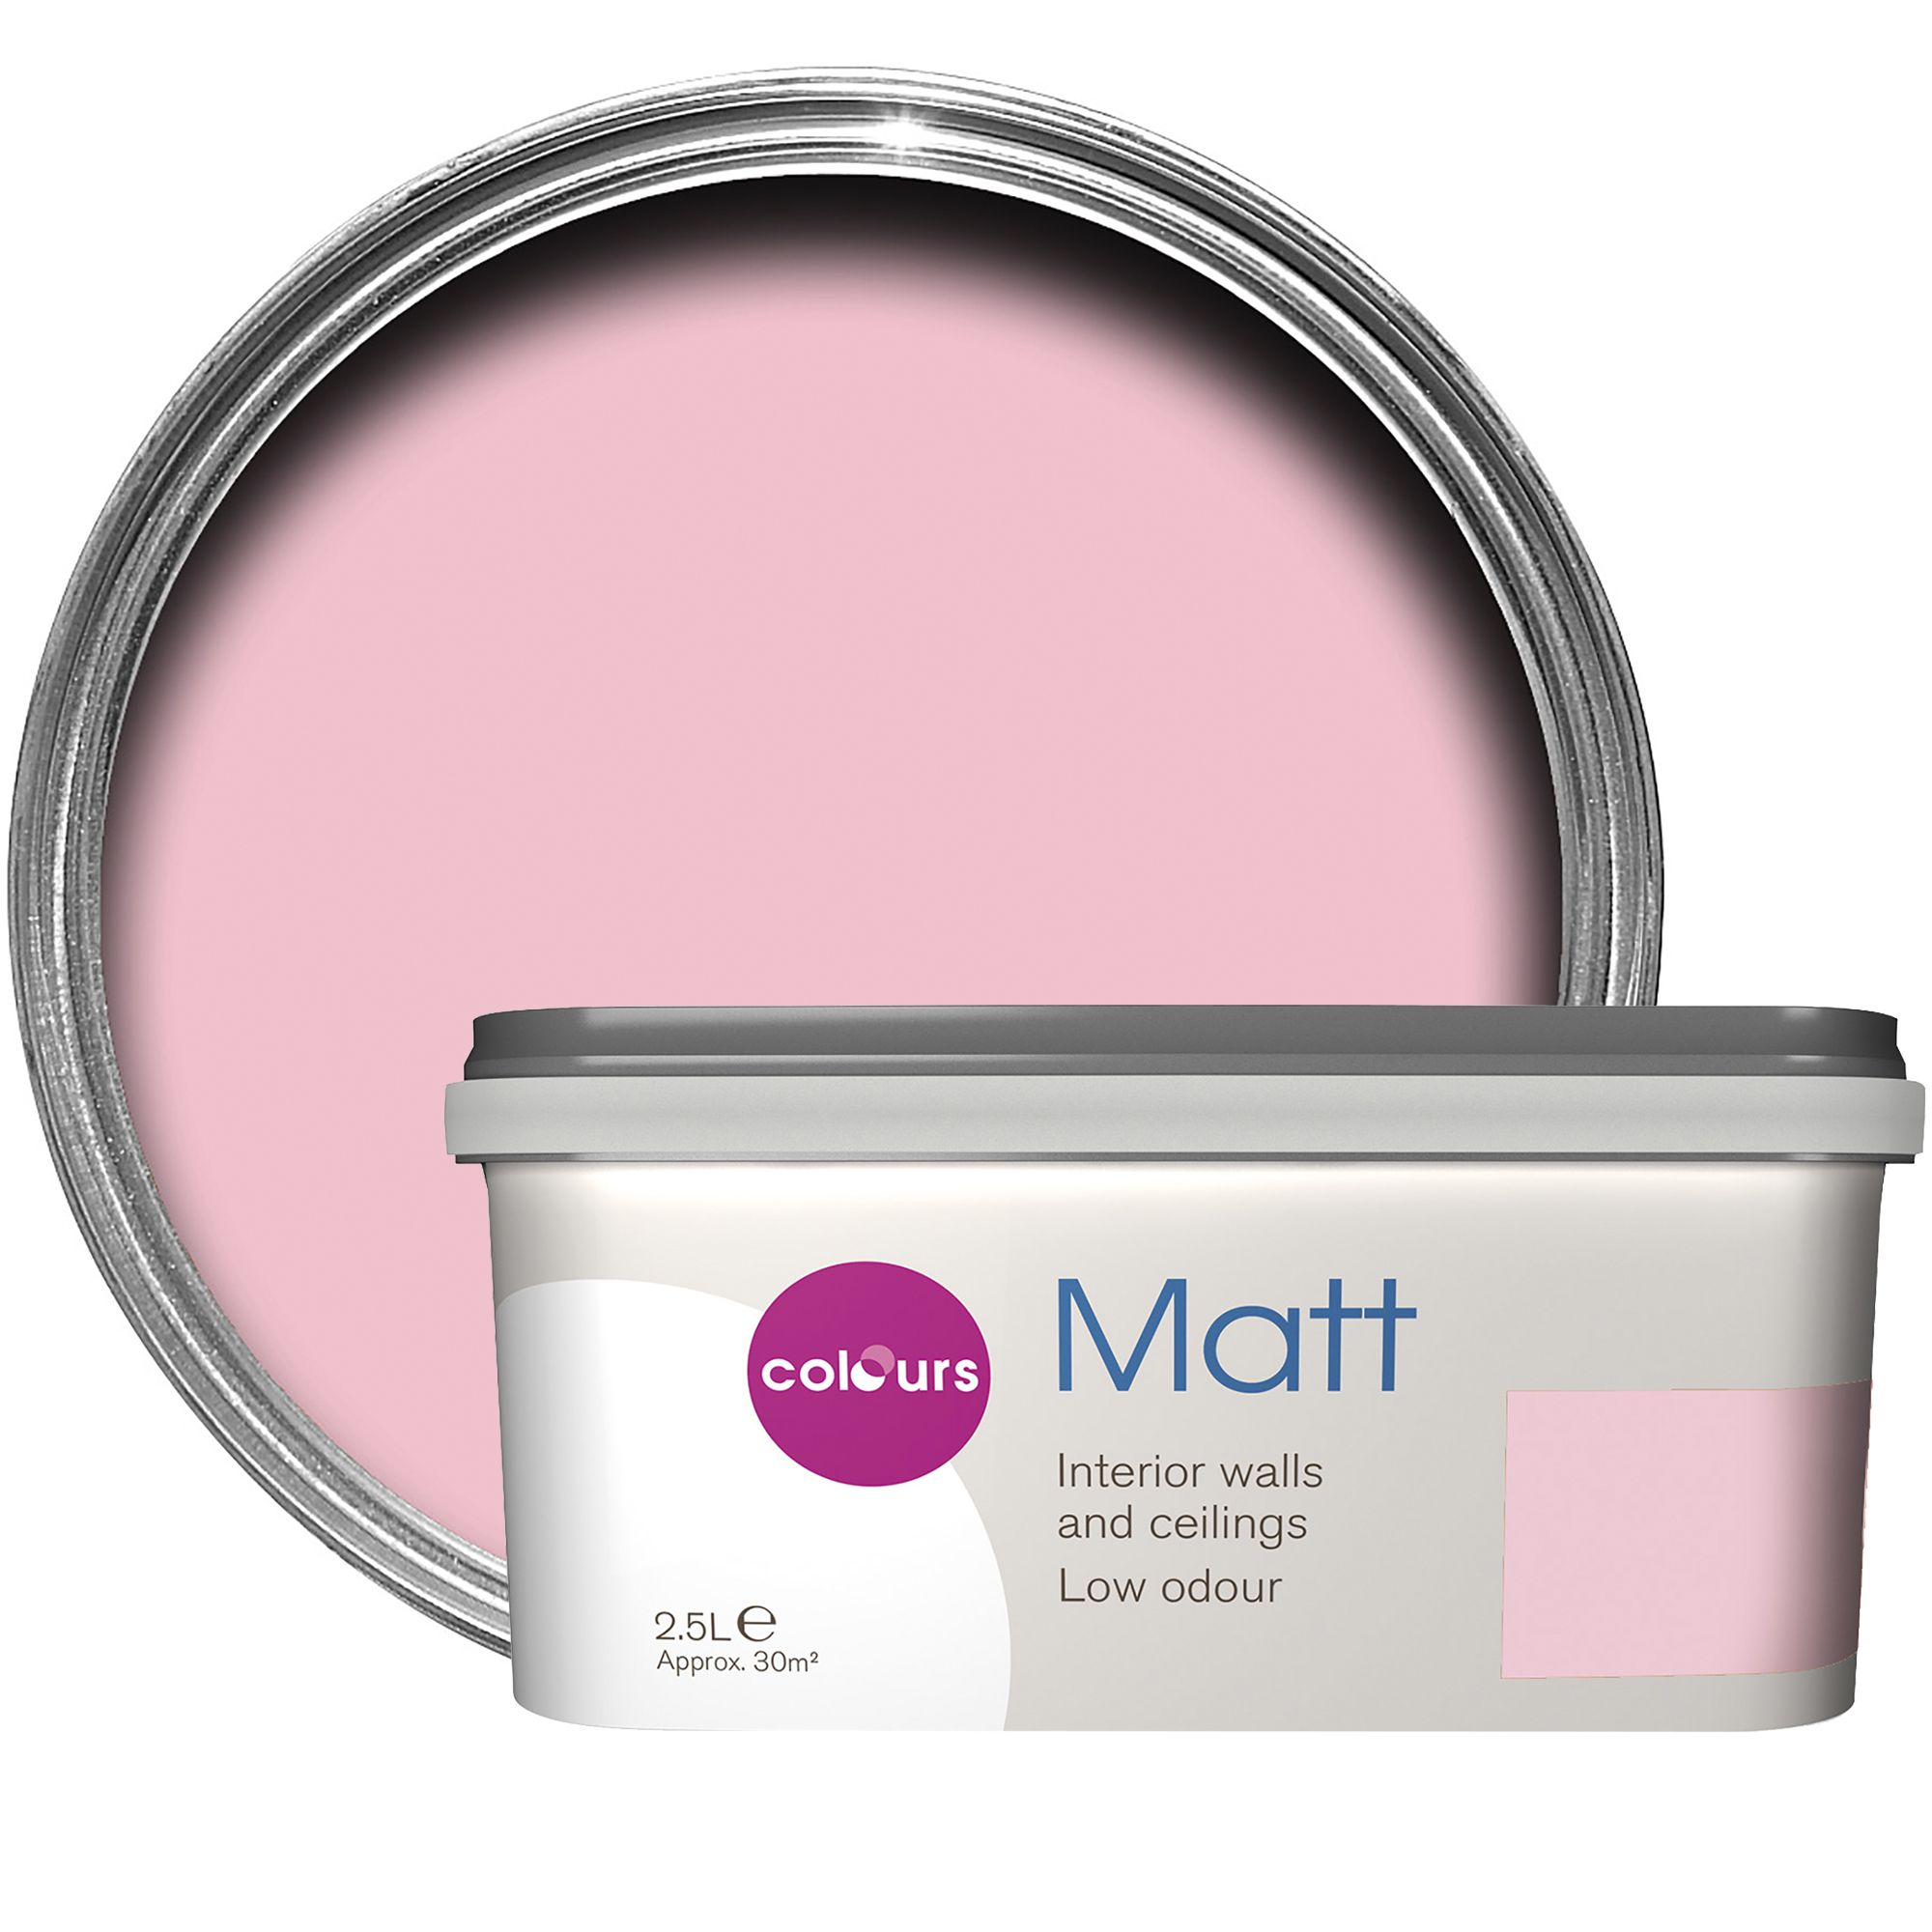 Colours Standard Pink pink Matt Emulsion paint 2.5L | Departments ...